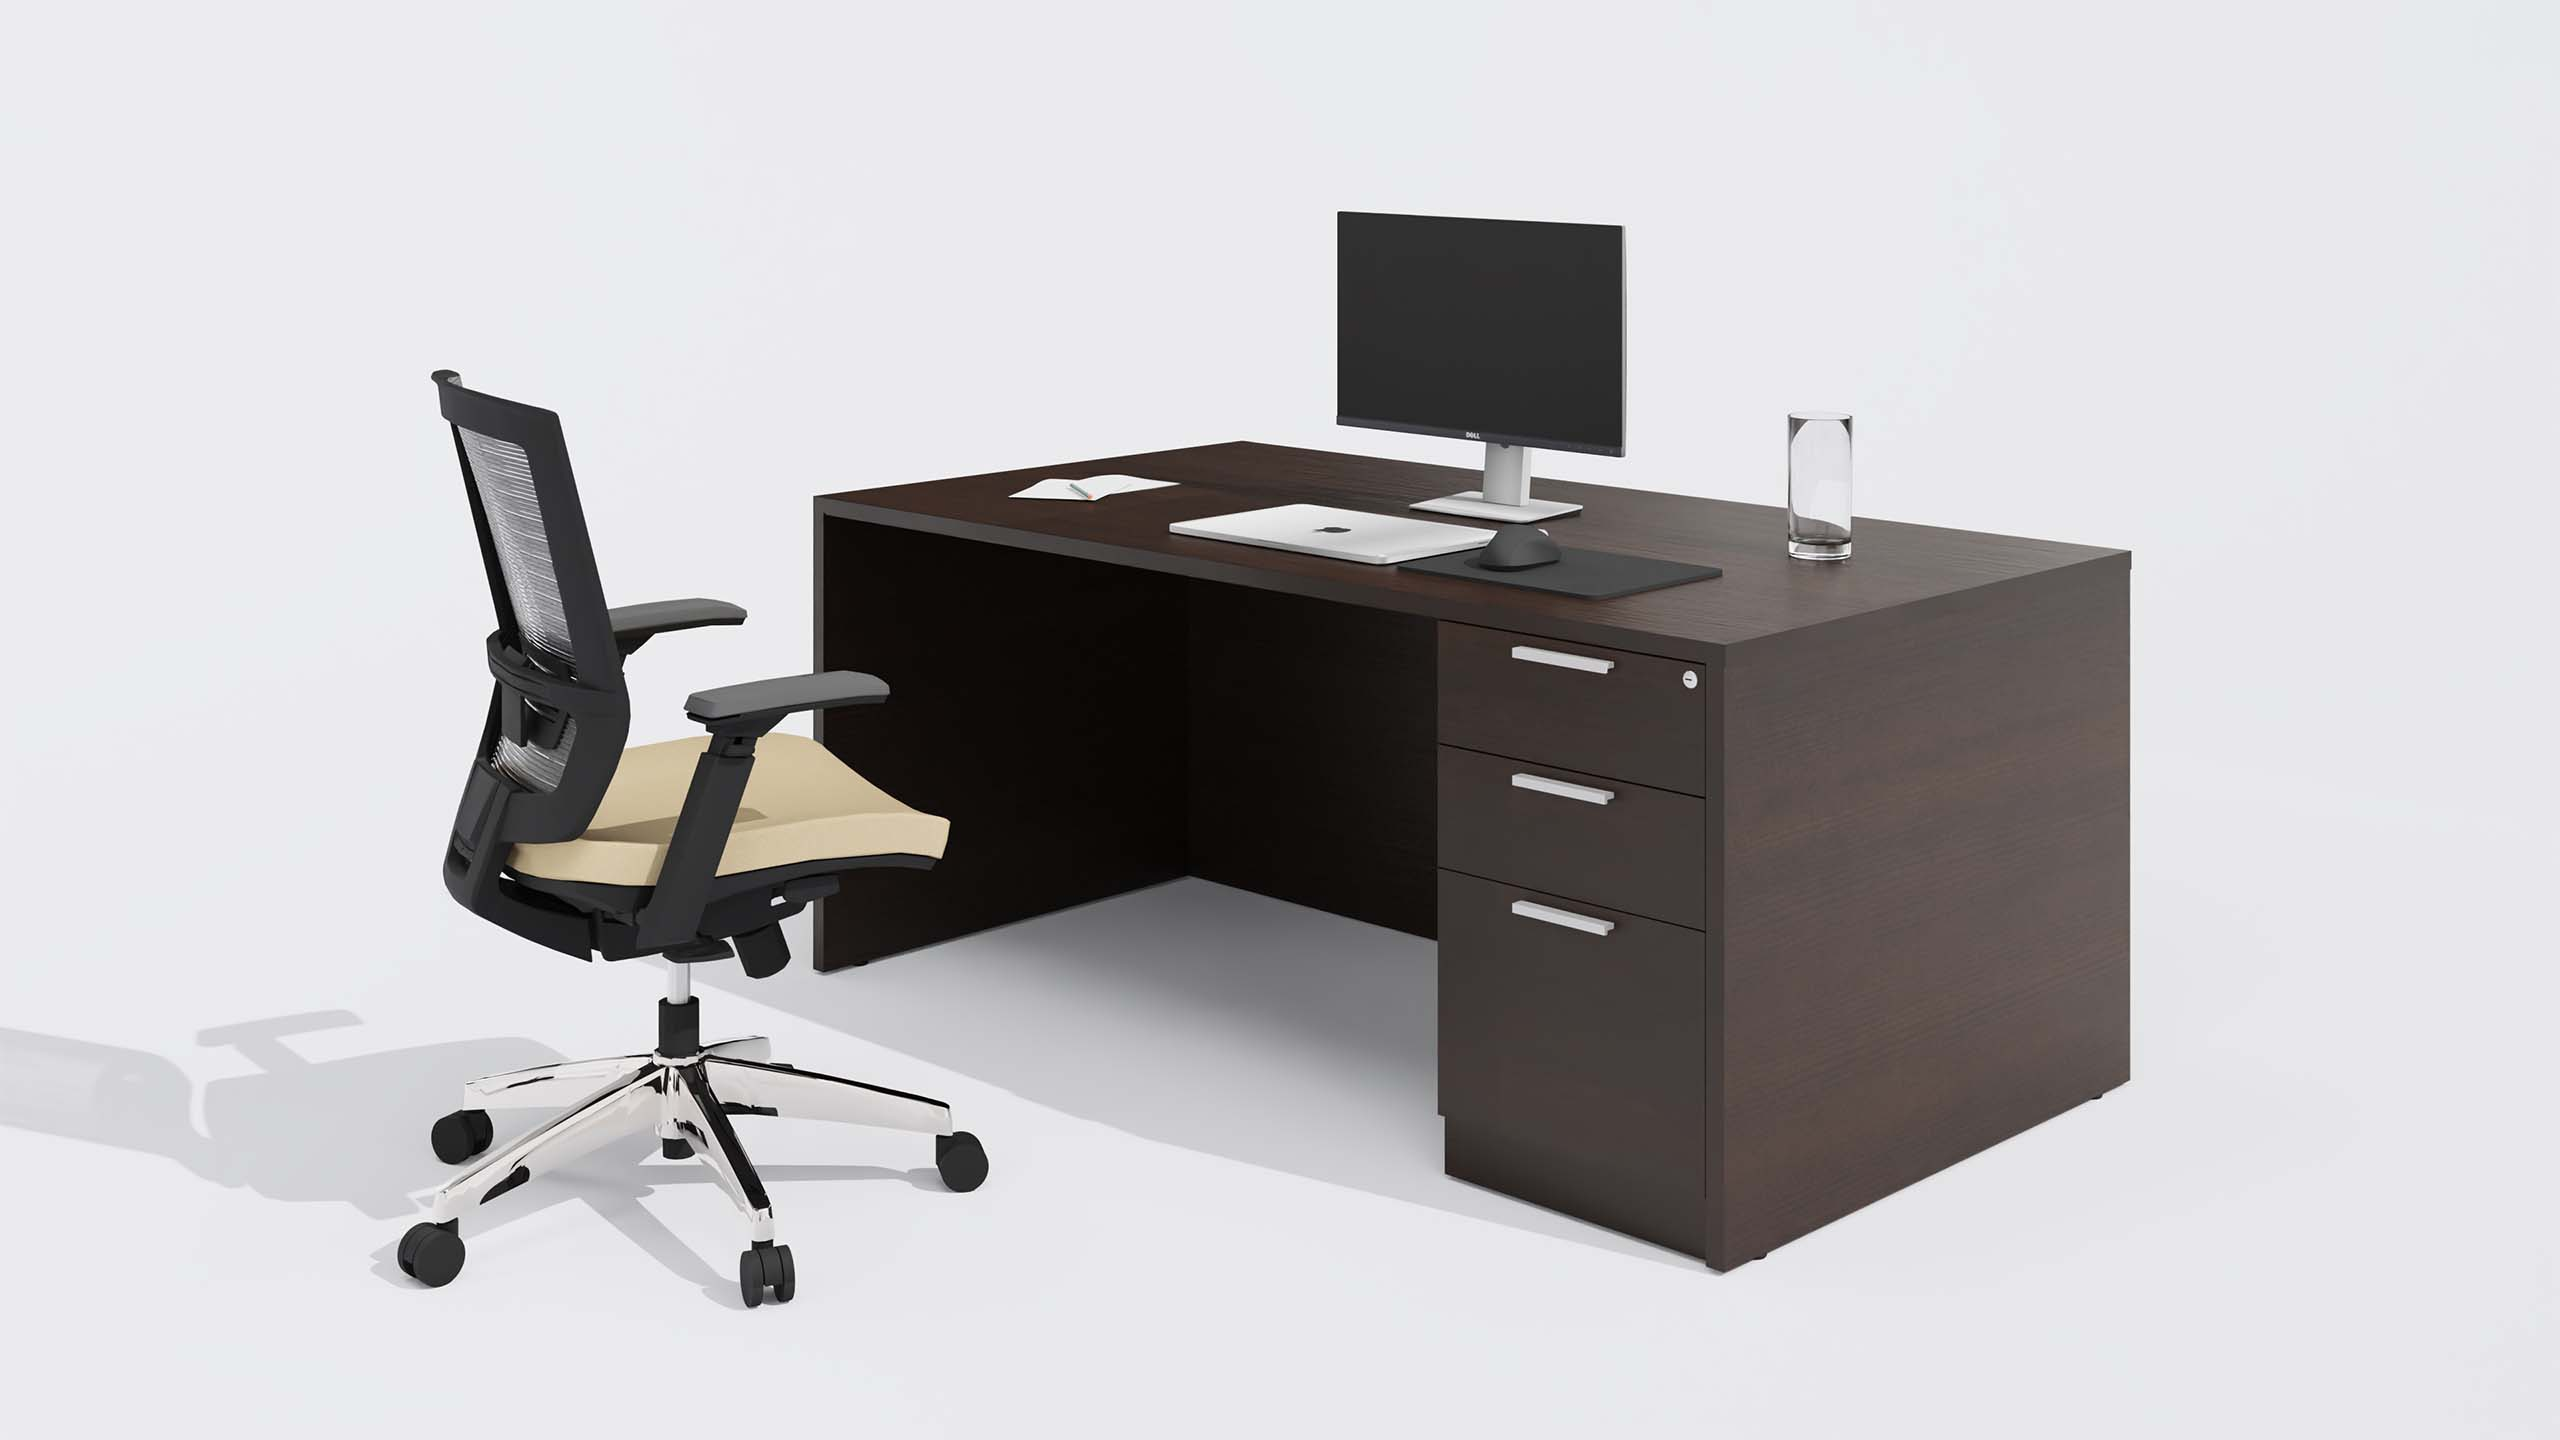 Laminate Desk 2432 from the back